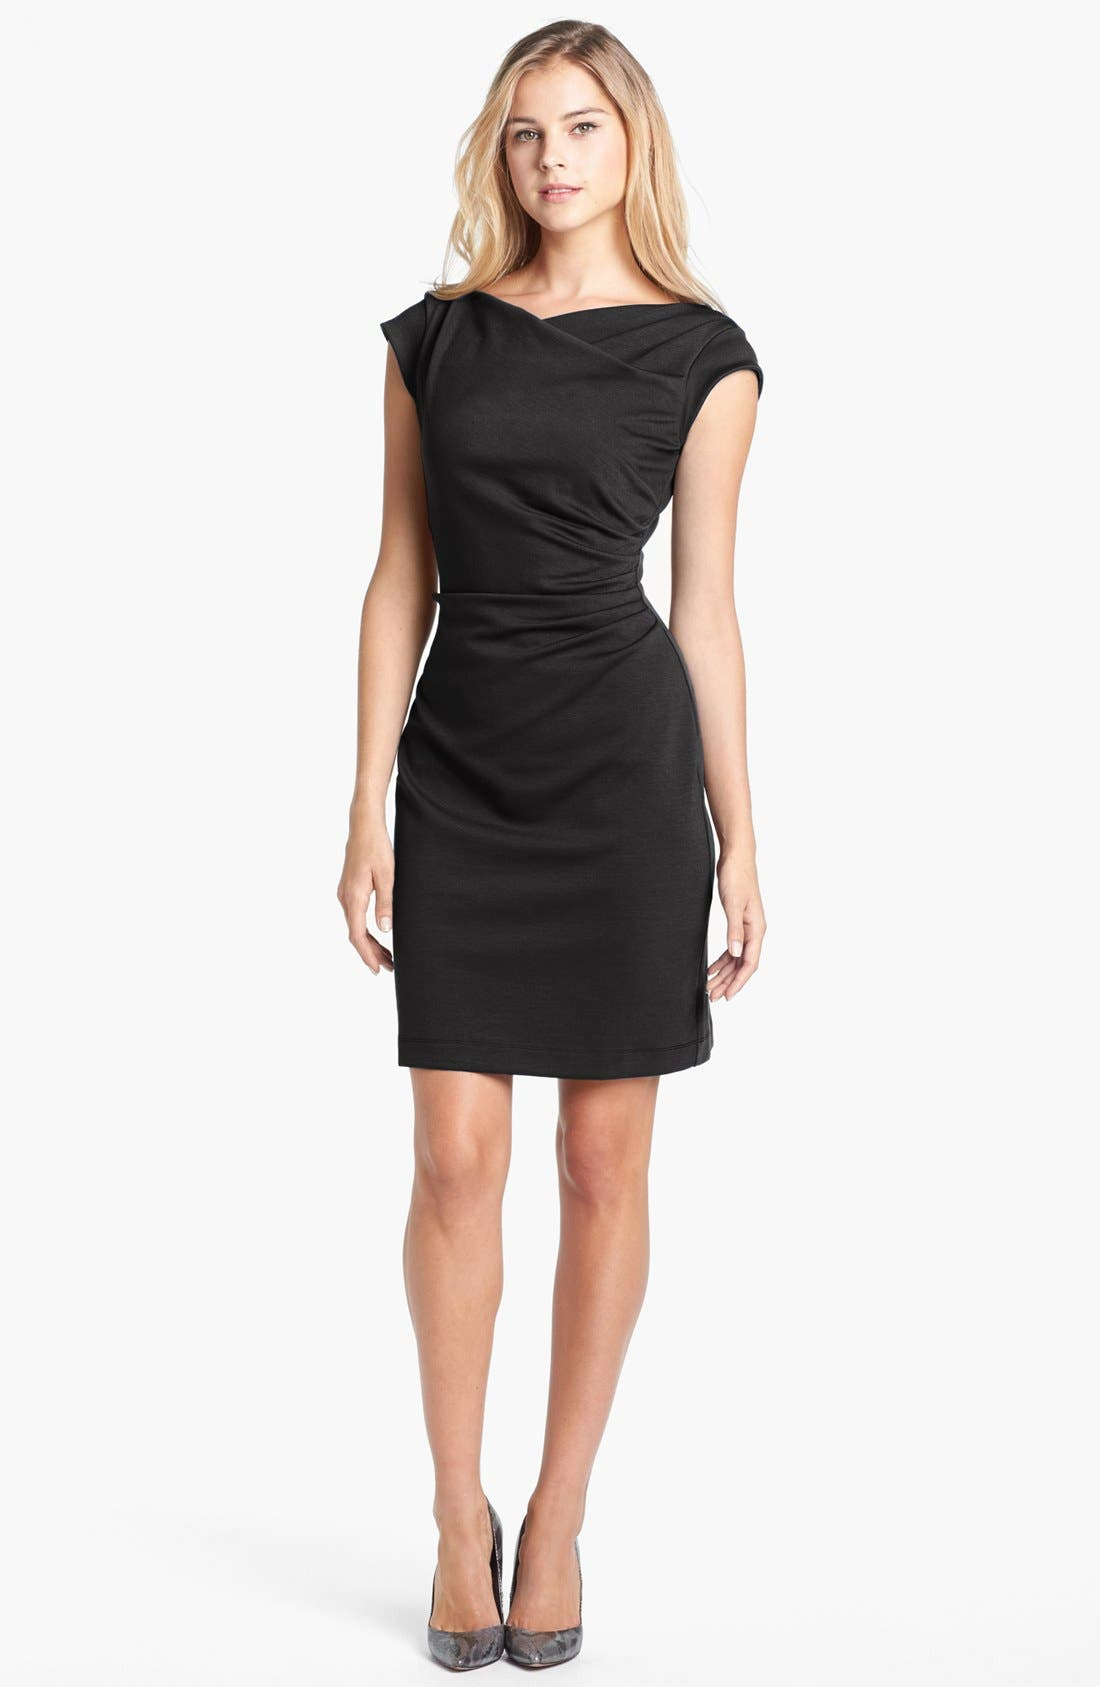 Alternate Image 1 Selected - Taylor Dresses Cowl Neck Sheath Dress